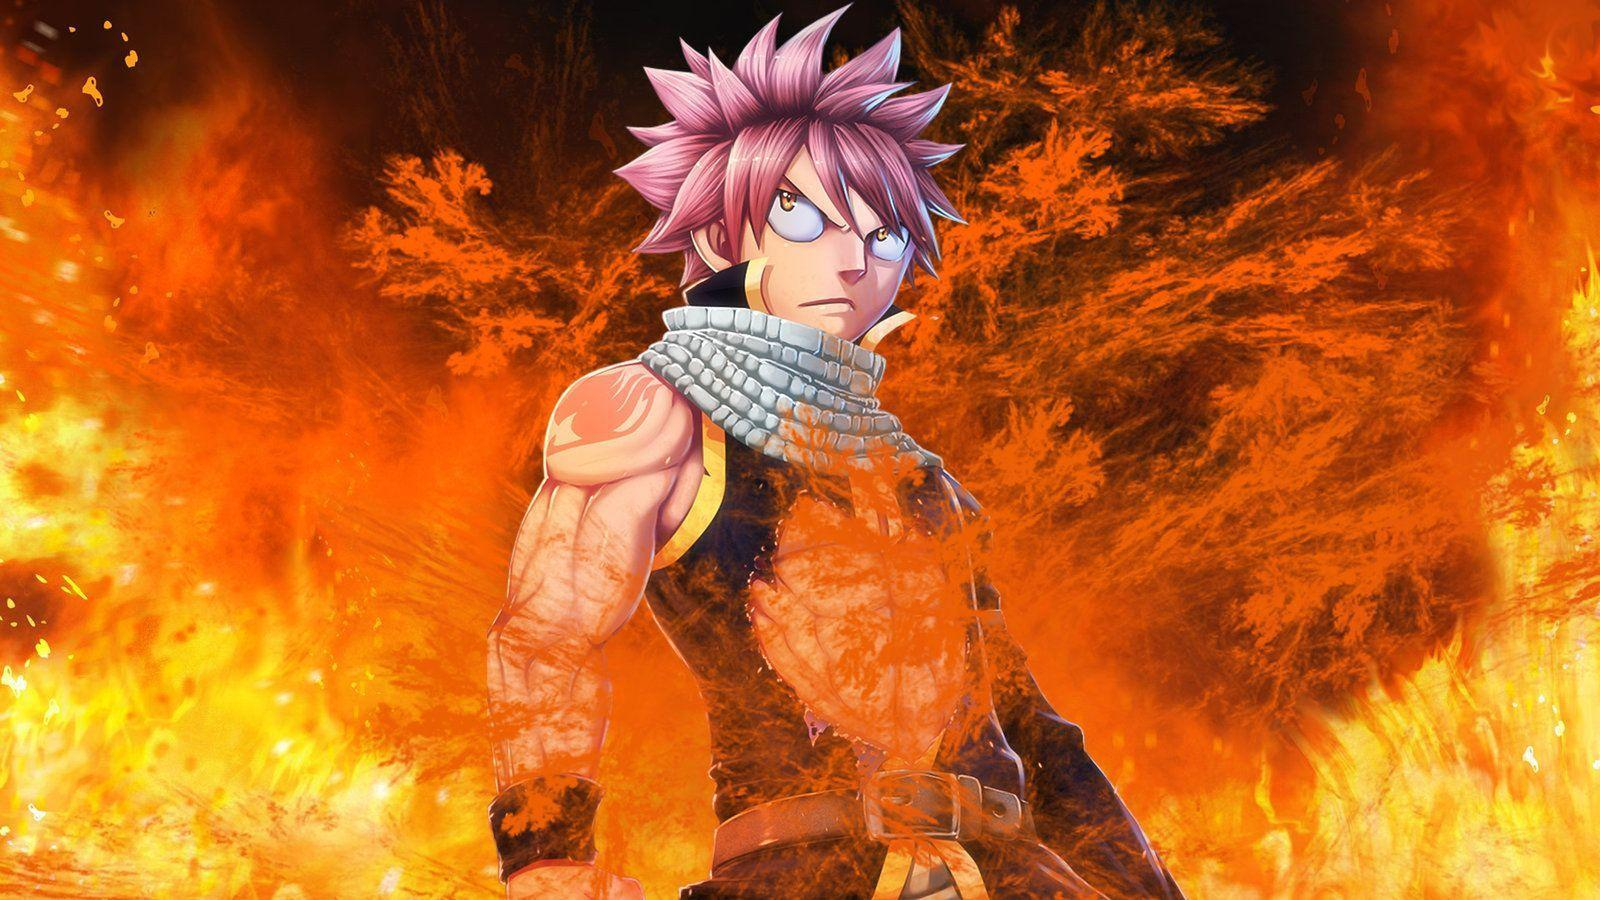 Fairy Tail Natsu Wallpapers - Top Free